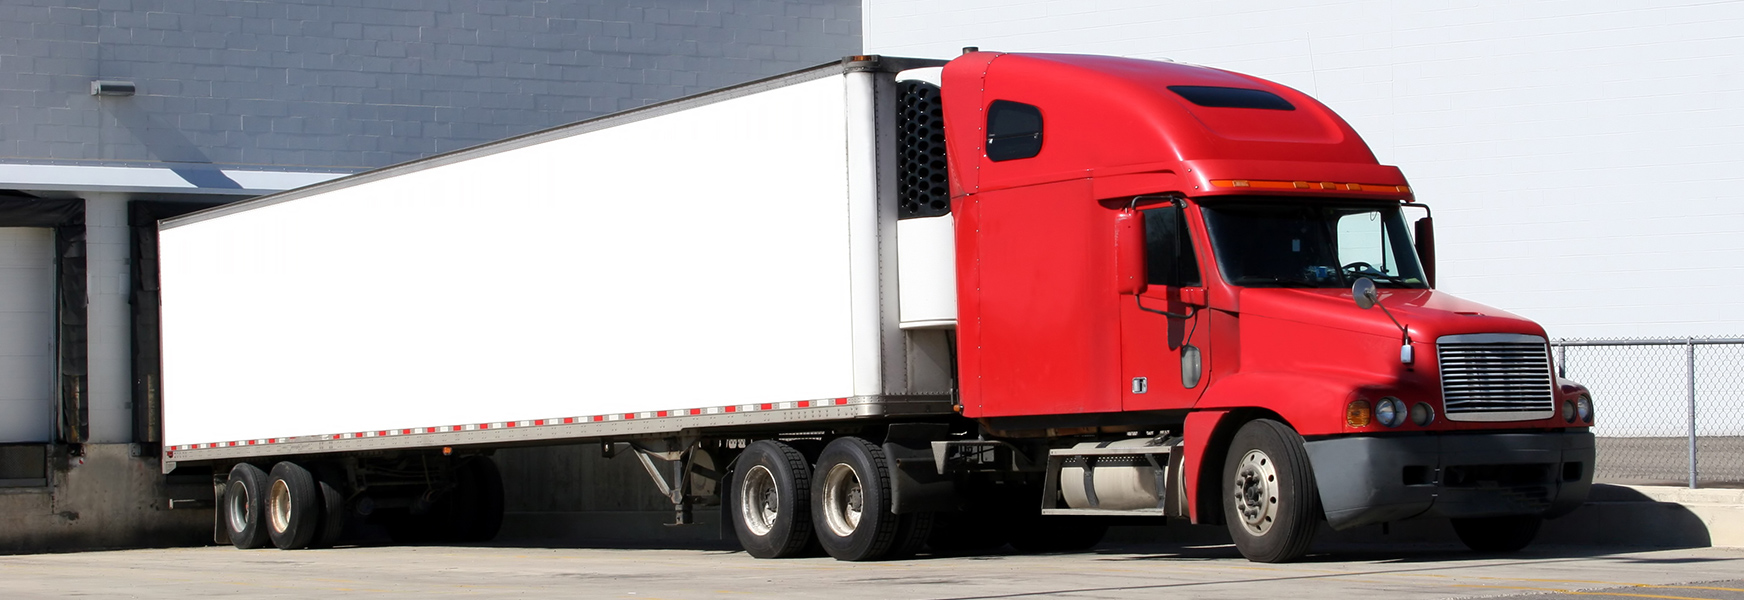 A semi truck sits parked at a loading dock